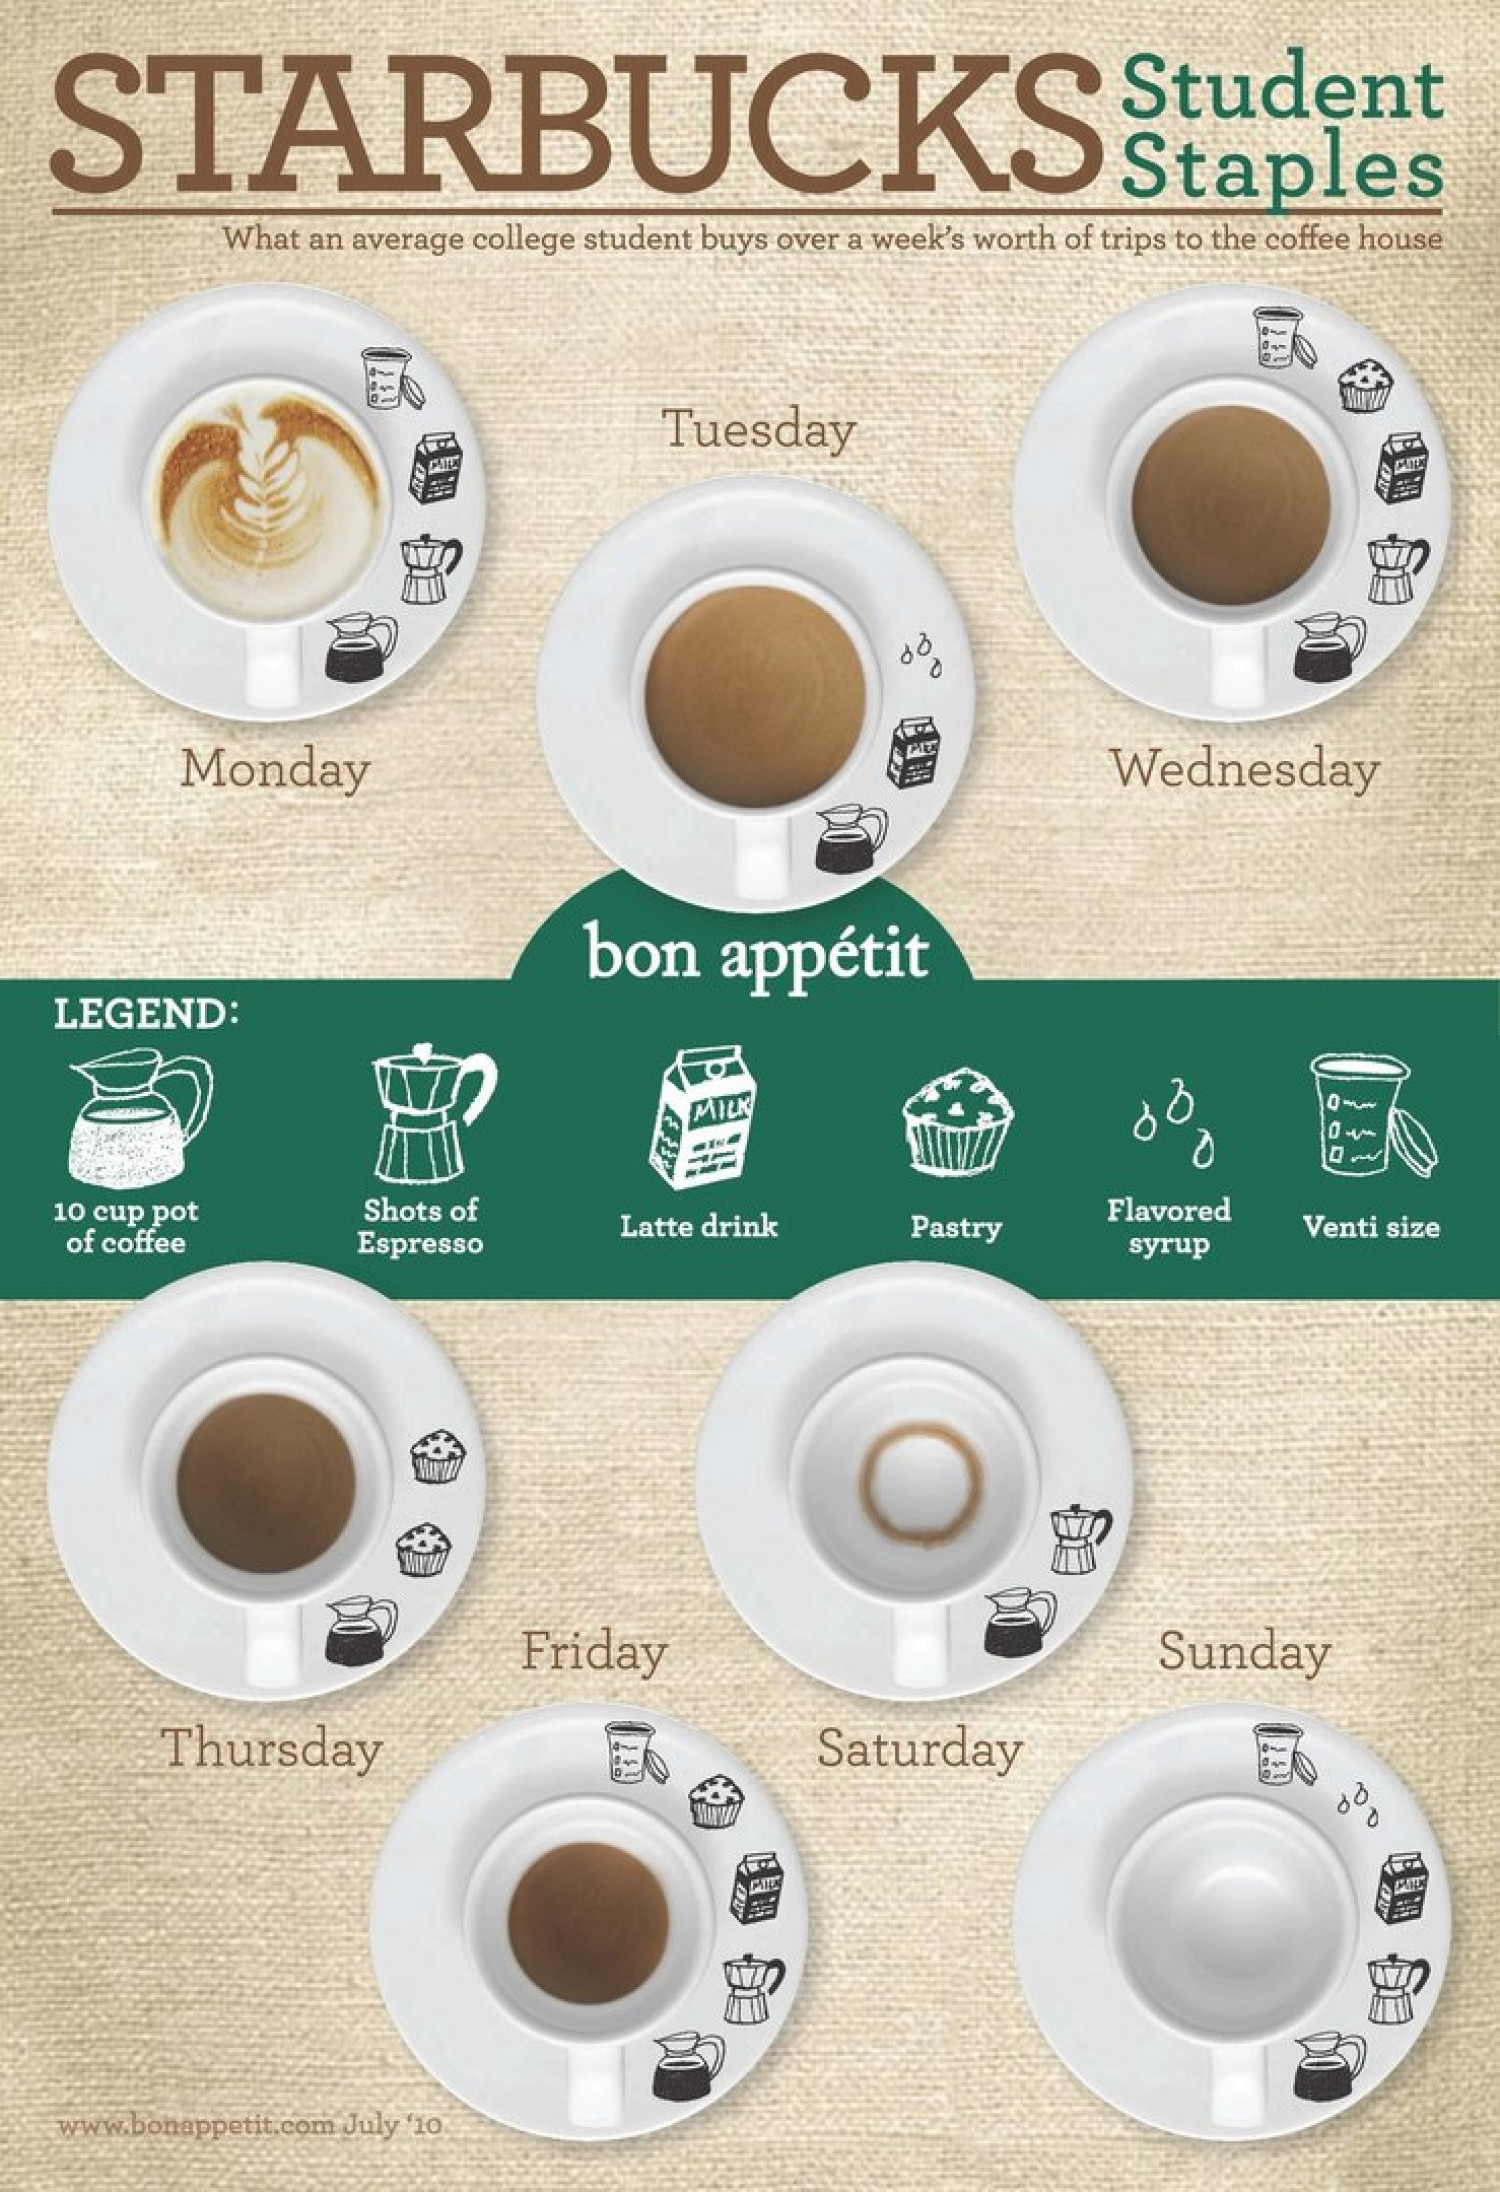 starbucks swot starbucks student staples infographic visually